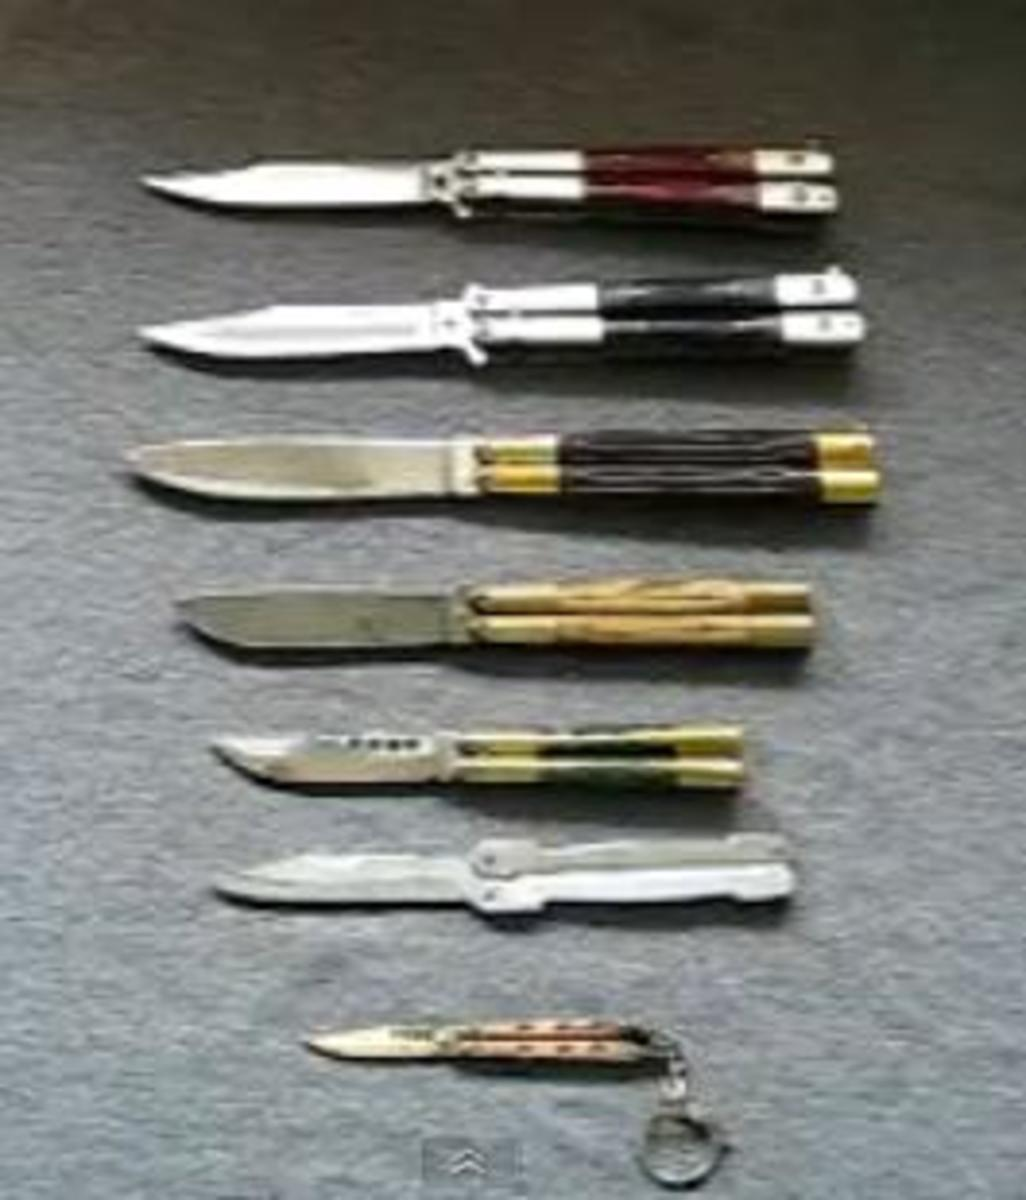 whats-the-law-on-knives-in-the-philippines